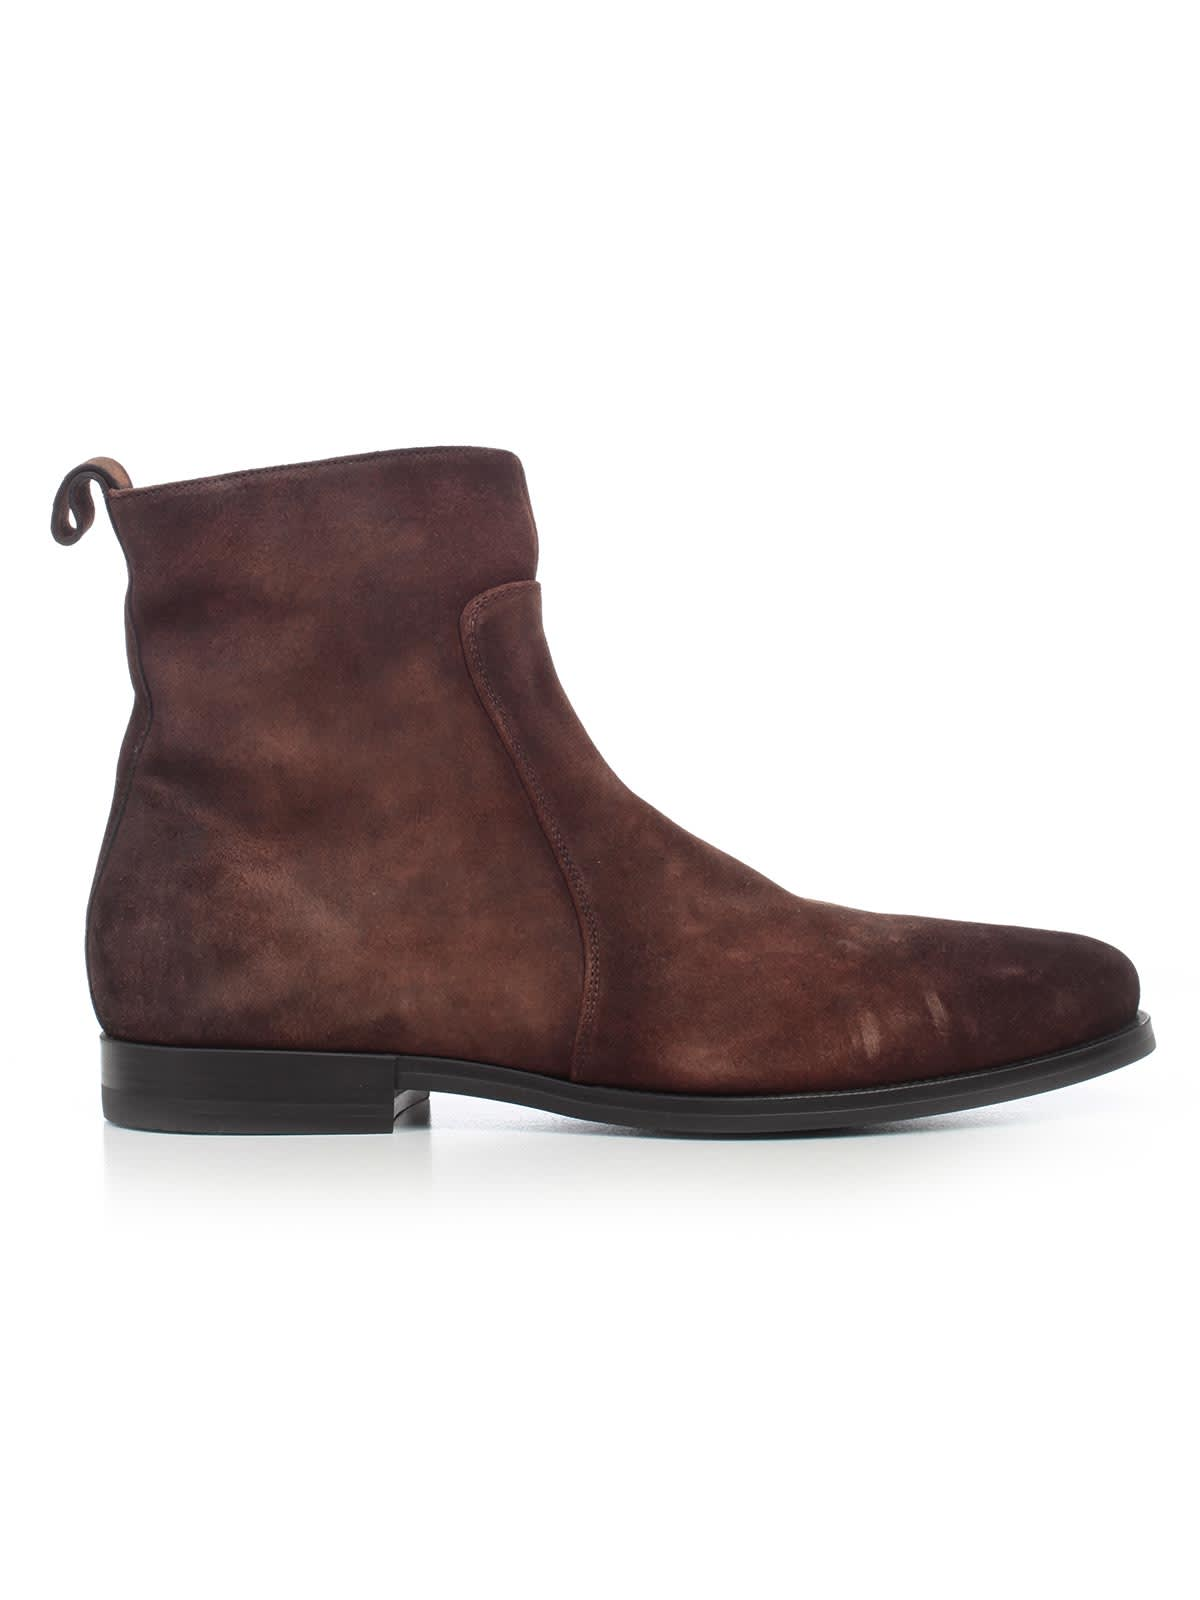 Santoni Boots Rubber Bottom W/zip